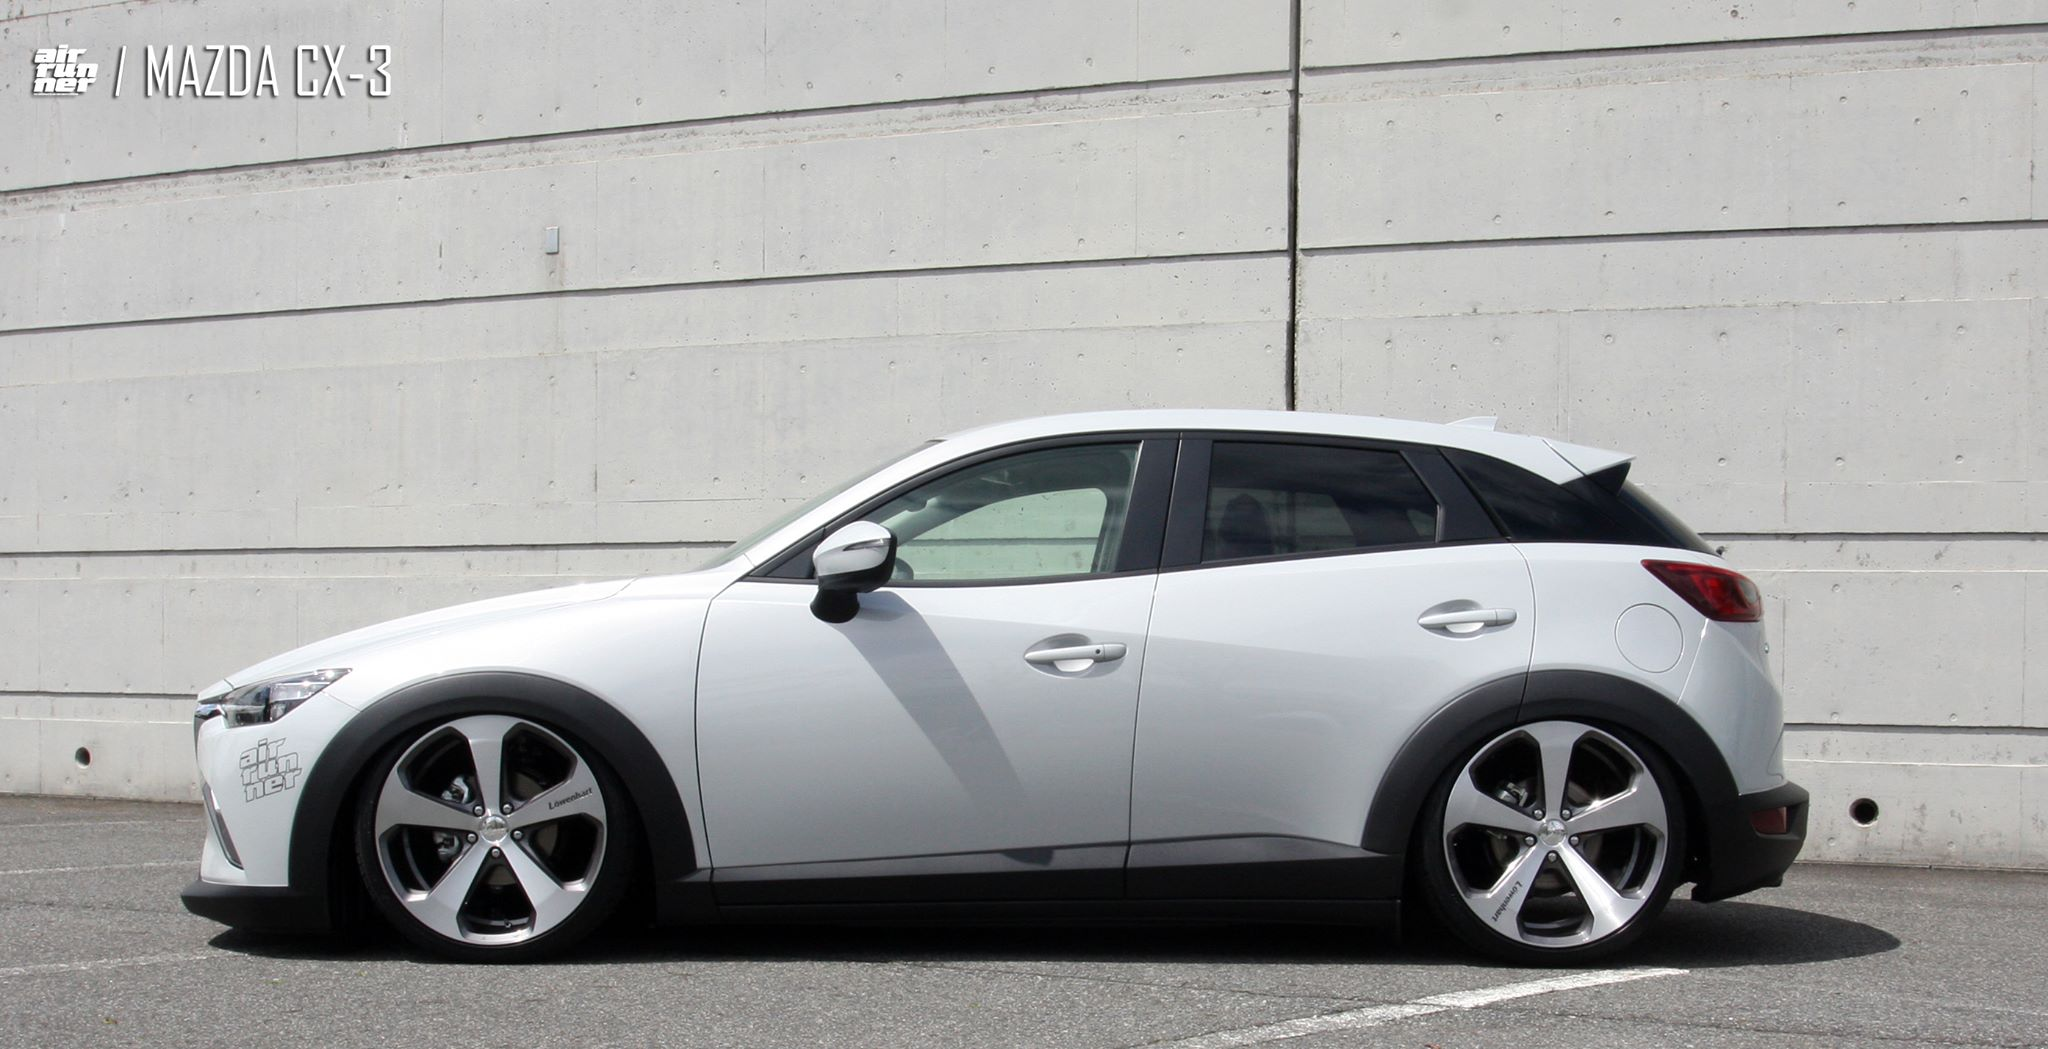 mazda cx 3 air runner lowered on lowenhart lv5 wheels. Black Bedroom Furniture Sets. Home Design Ideas